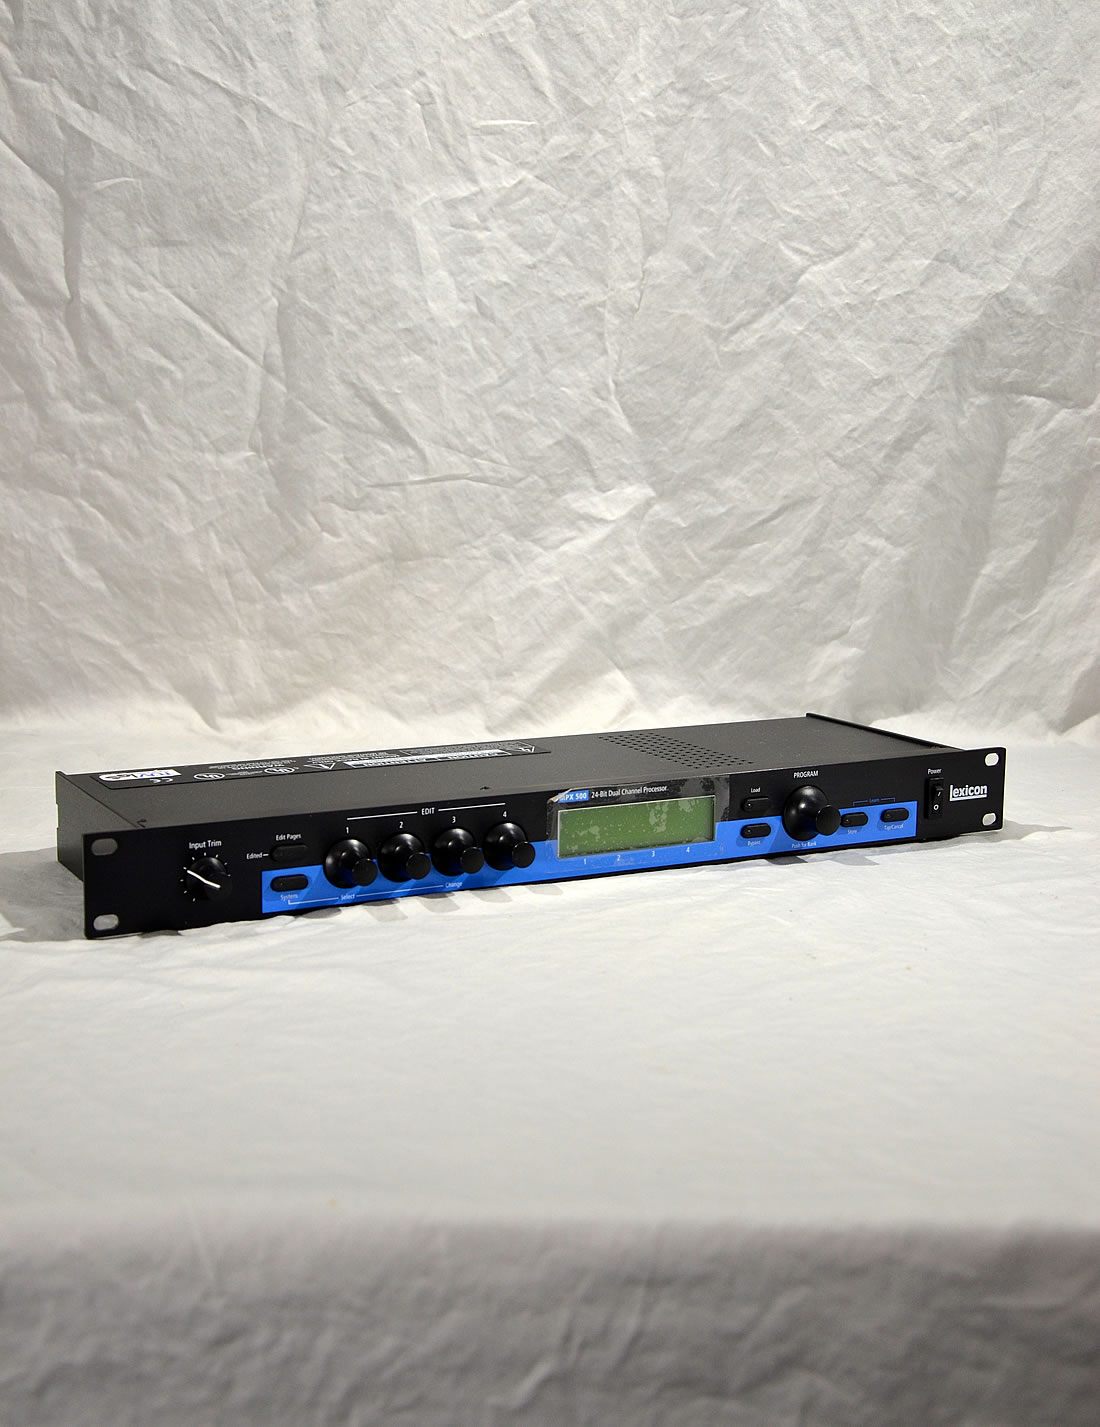 Lexicon MPX 500 24 Bit Channel Processor